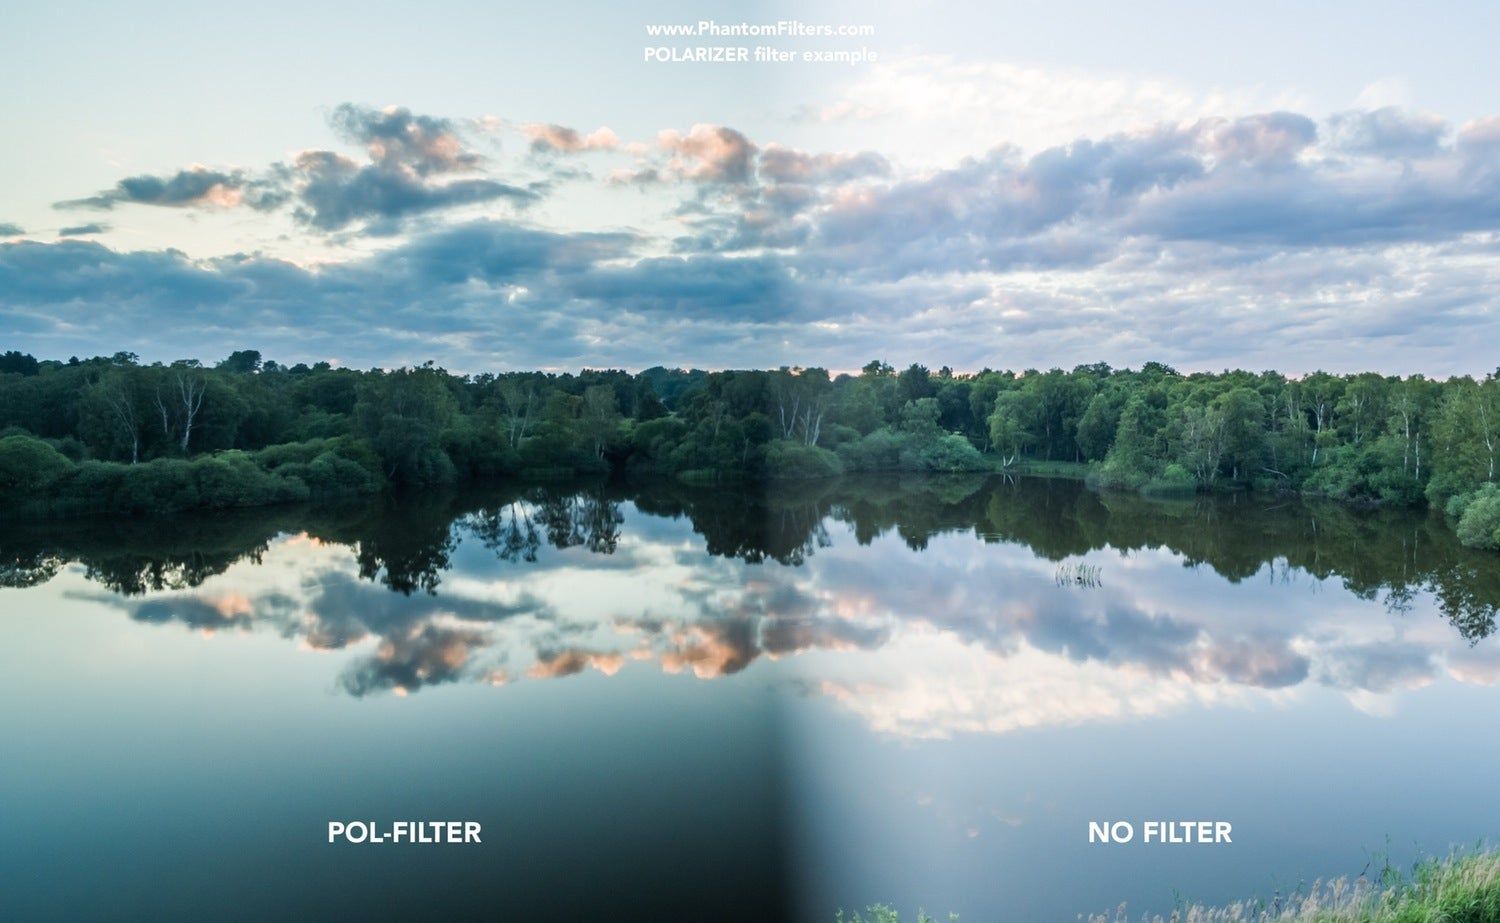 Image of 1 POL (Polarizer) Filter for DJI Phantom 3 & 4 Professional / Advanced